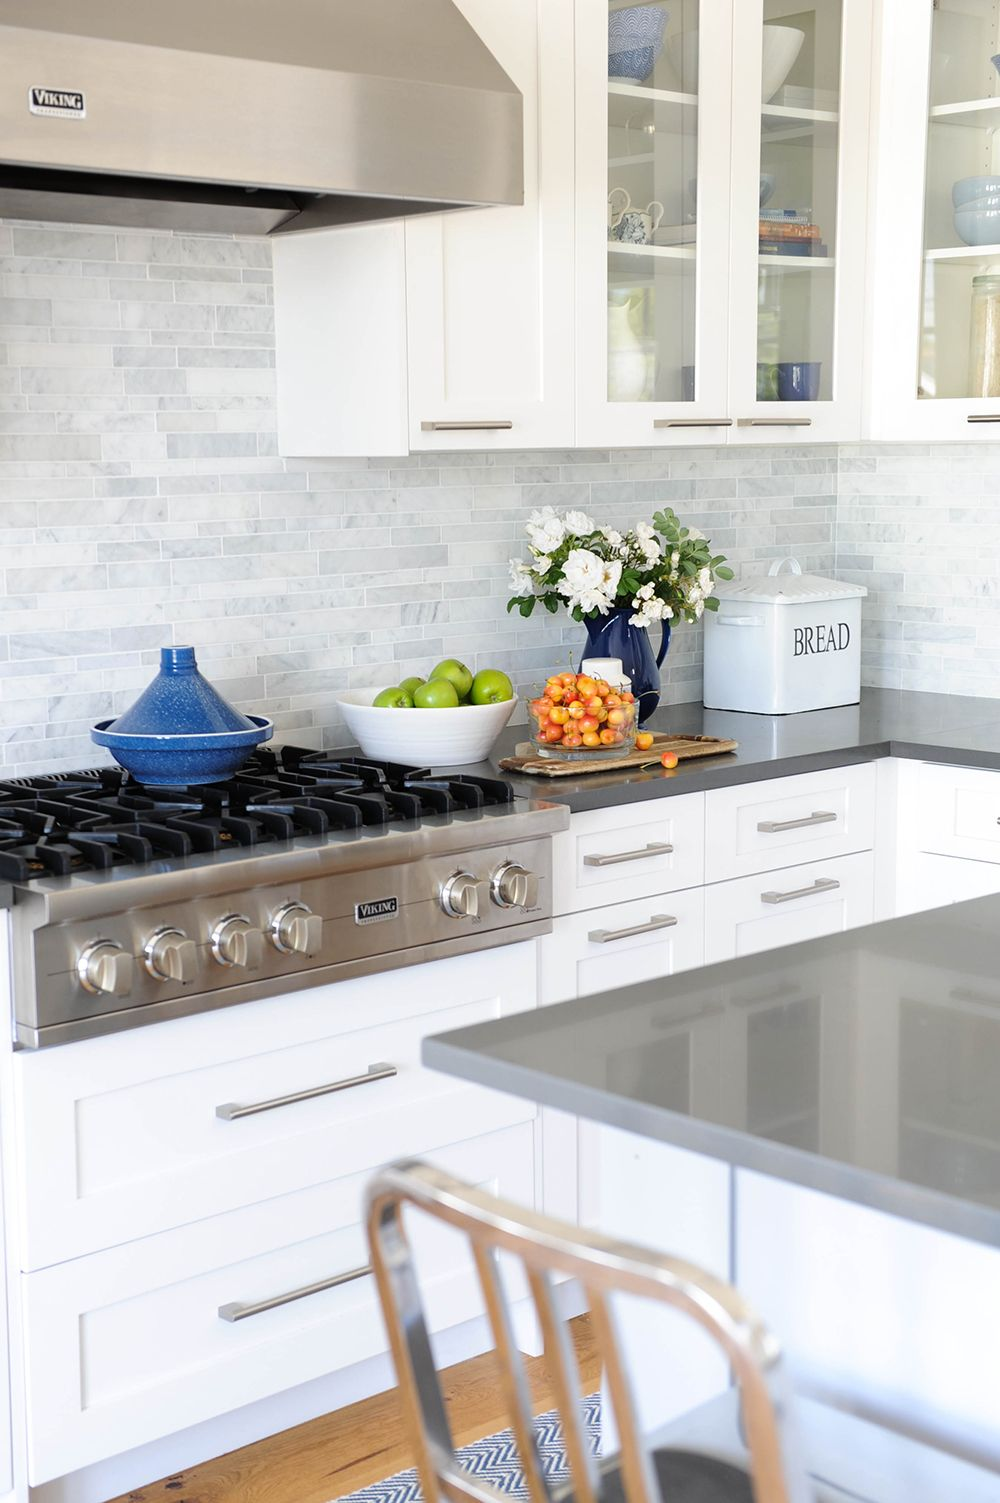 Tracey Ayton Photography 11 Countertop Backsplash Kitchen Inspirations Kitchen Design Kitchen Remodel